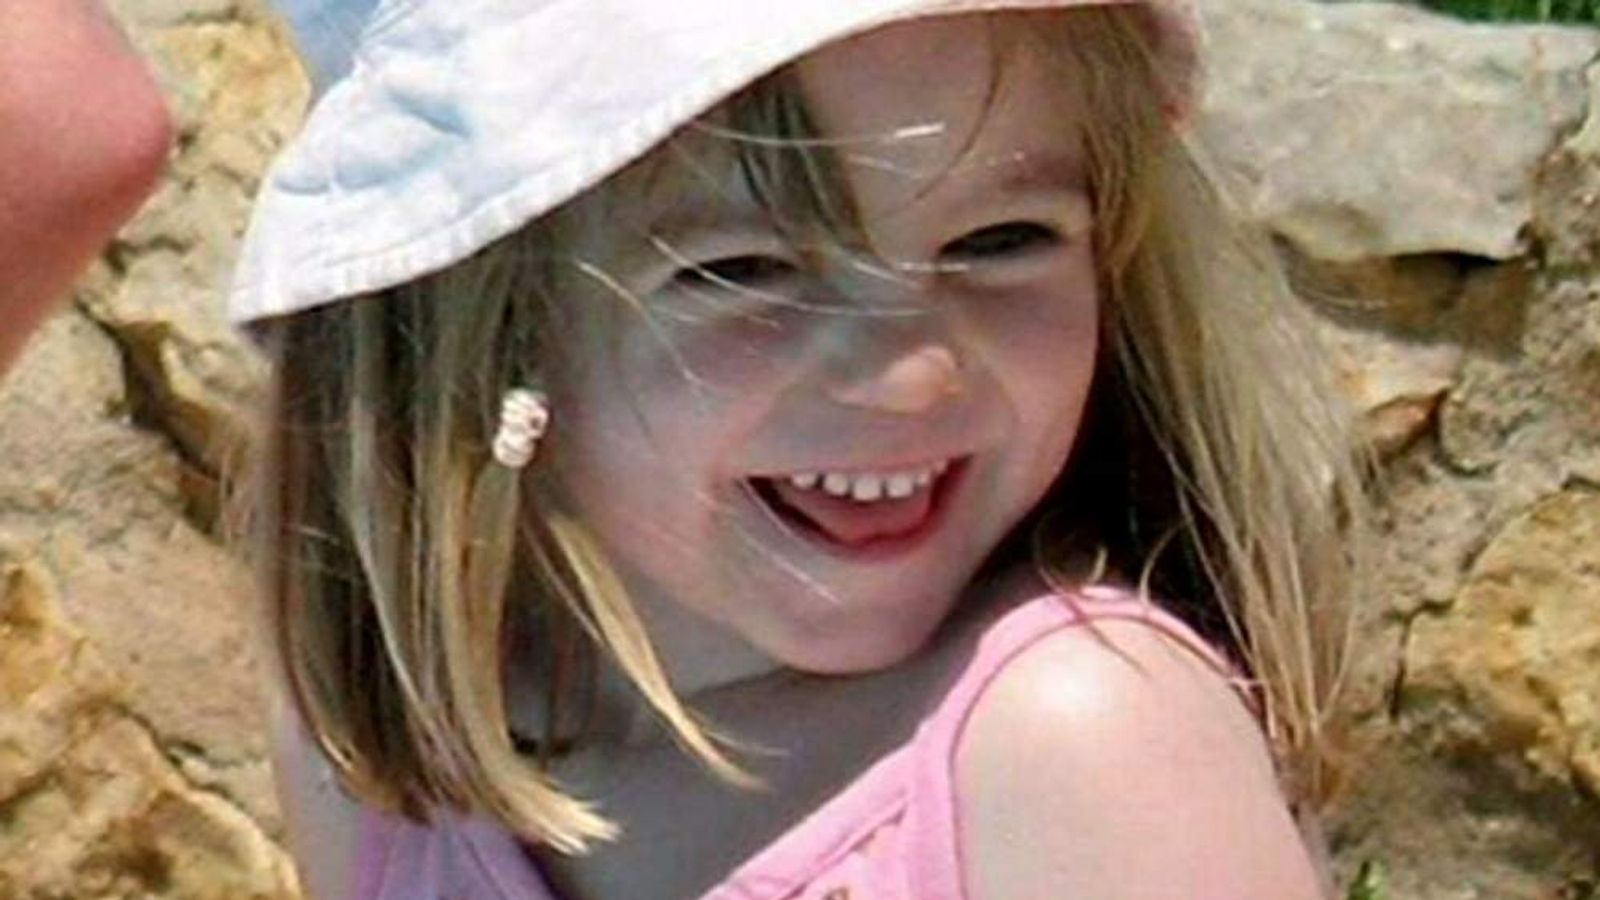 Search for missing Madeleine McCann